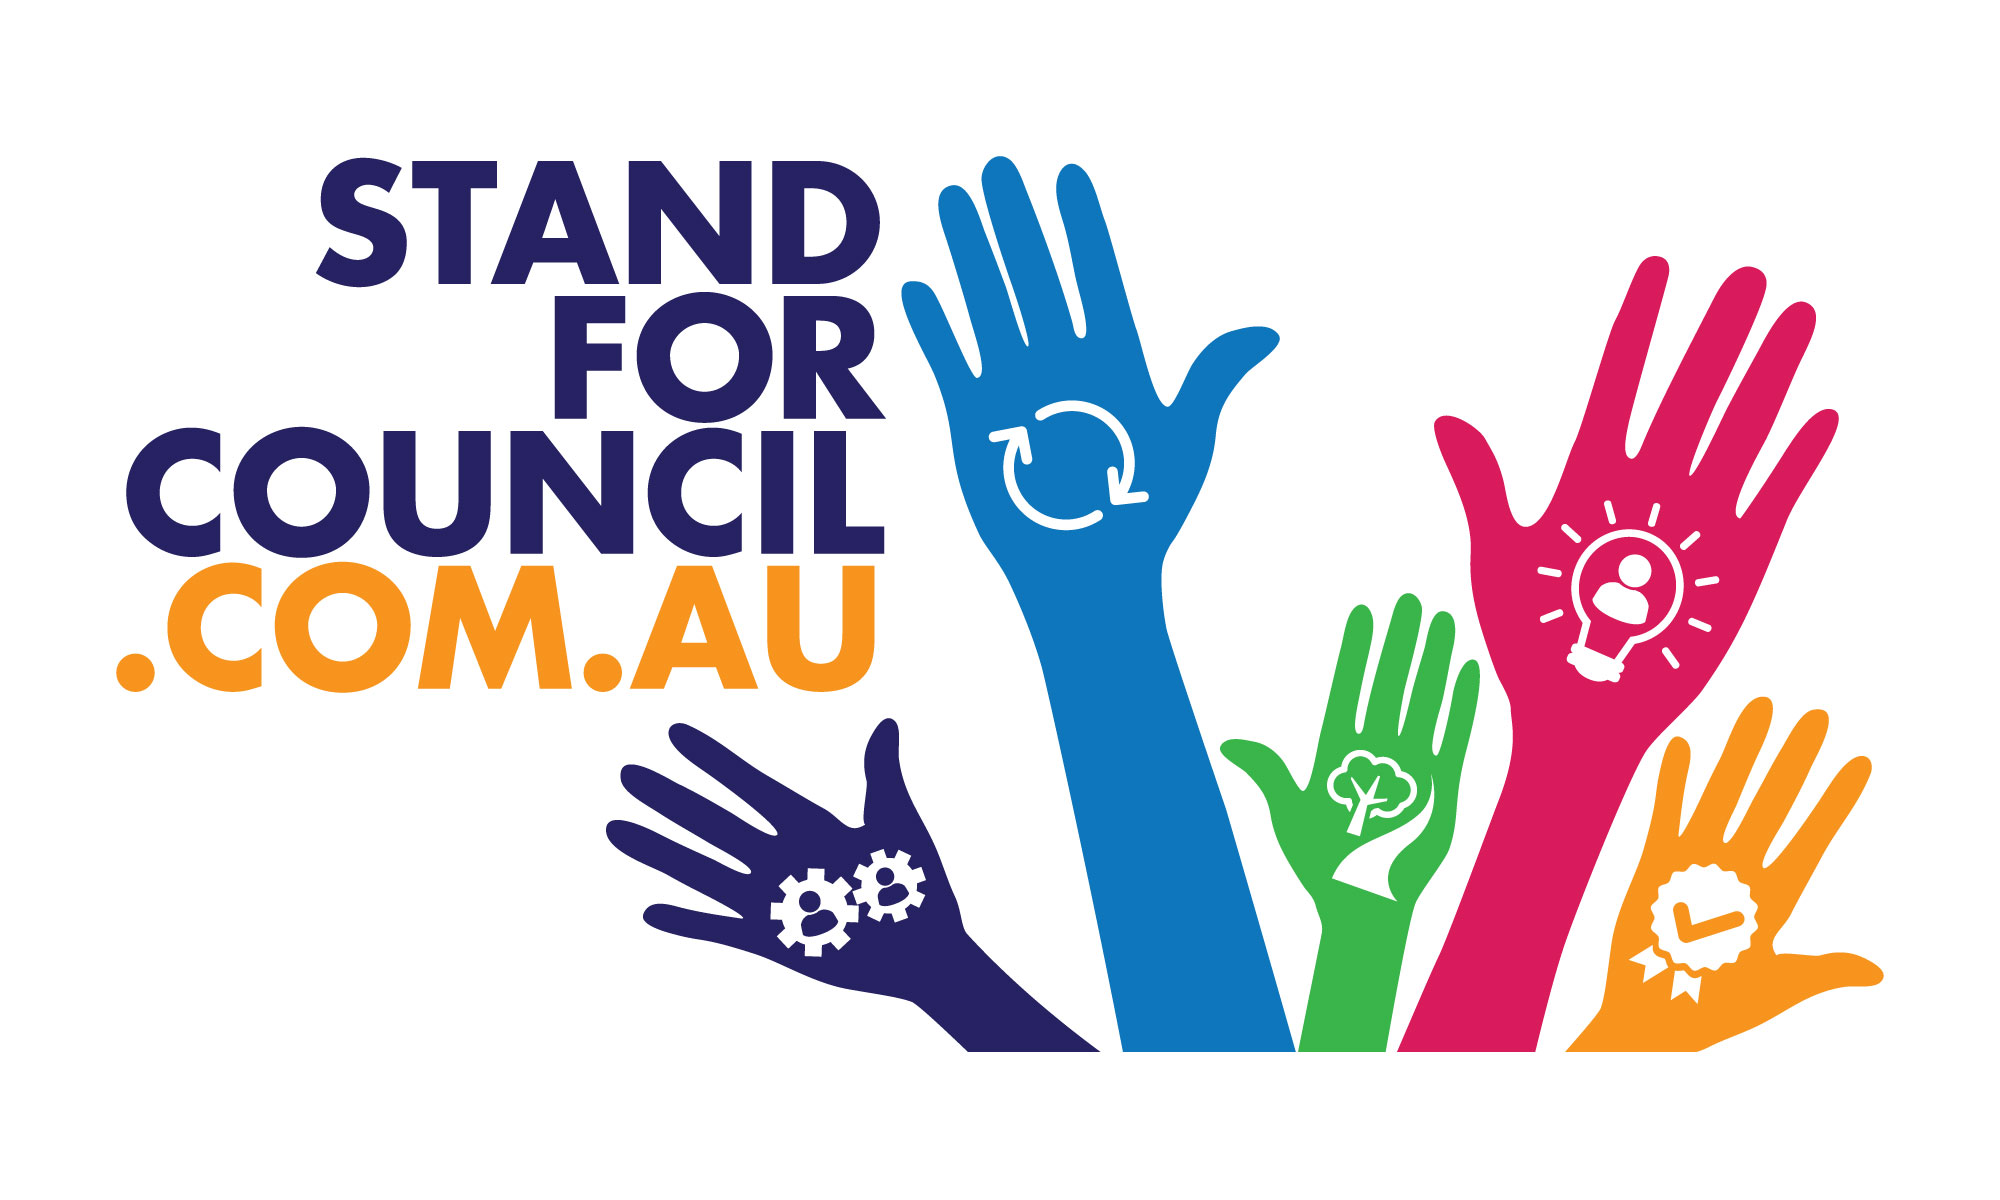 Stand for council landscape logo